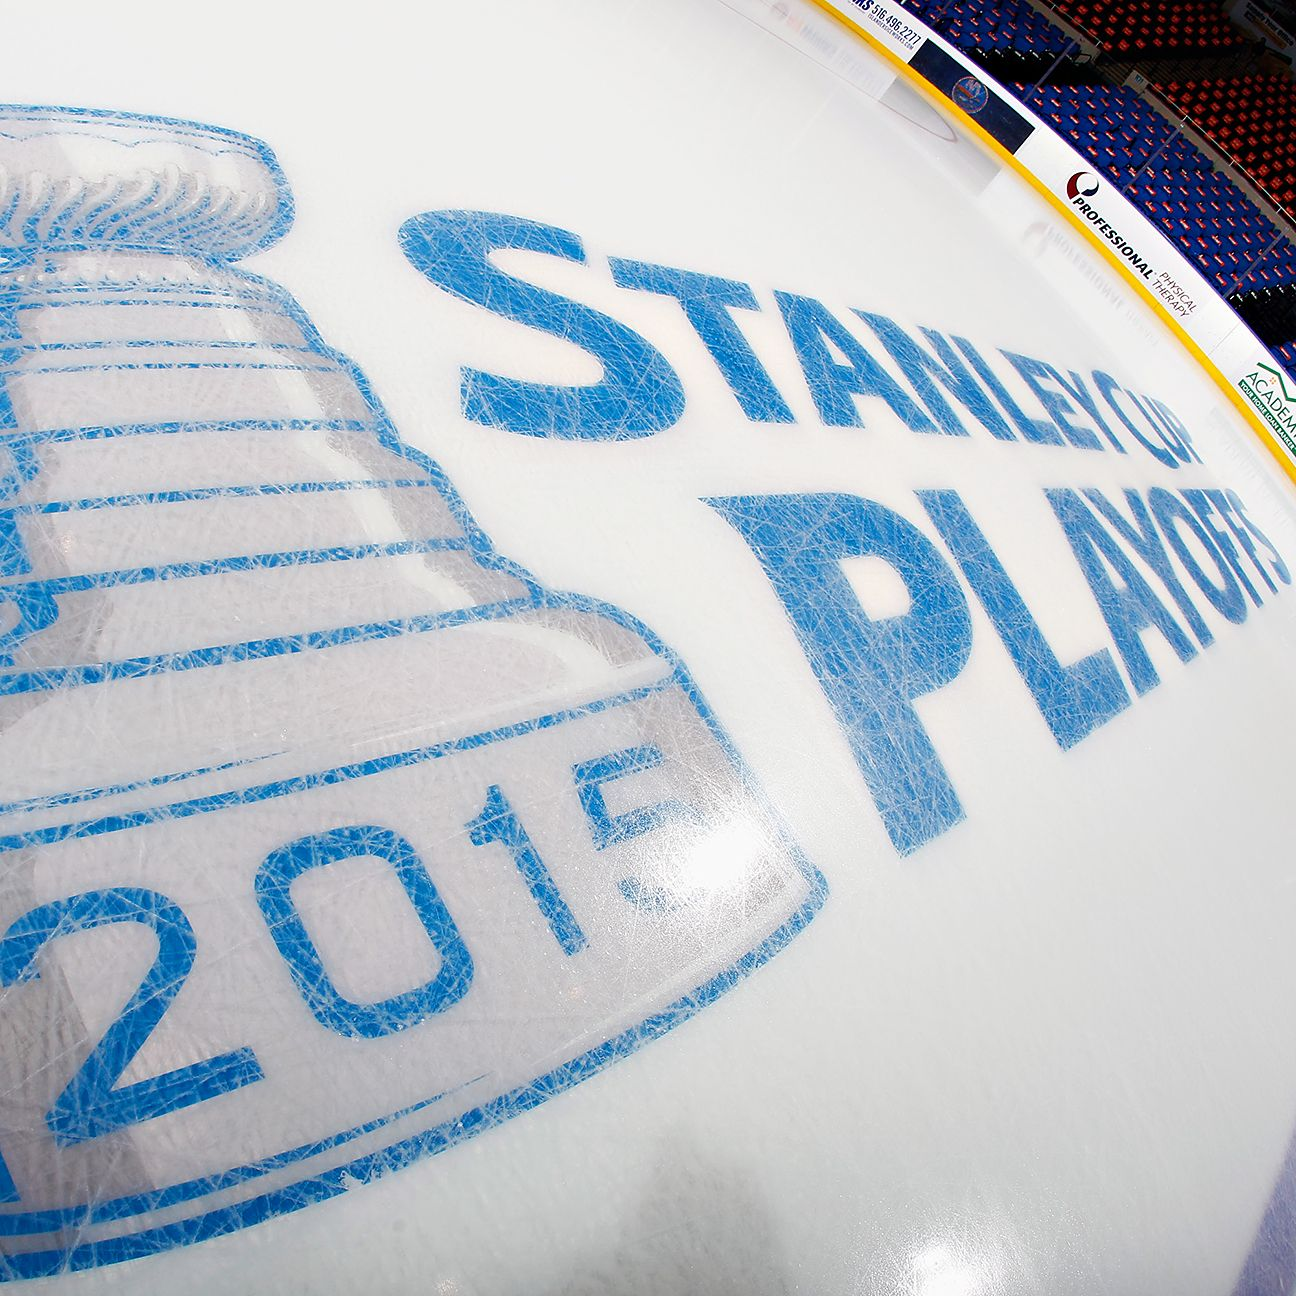 Stanley cup playoffs 2015 dates